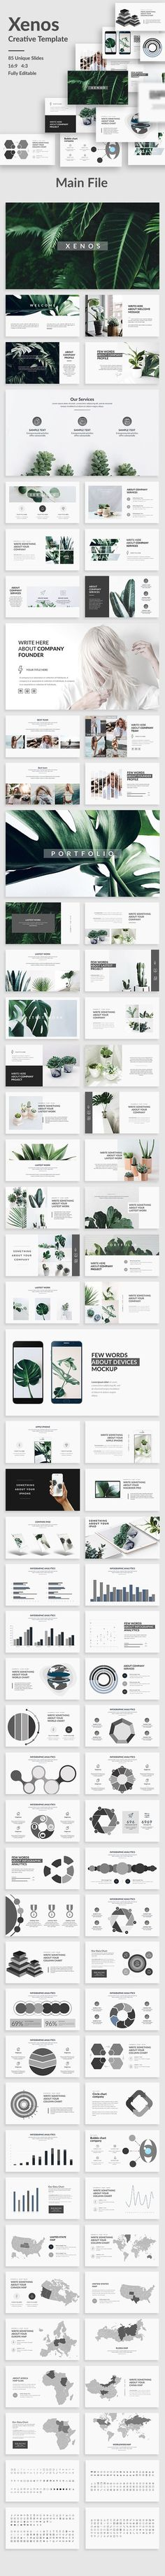 Xenos Creative Powerpoint Template - #Creative #PowerPoint #Templates Download here: https://graphicriver.net/item/xenos-creative-powerpoint-template/20142866?ref=alena994